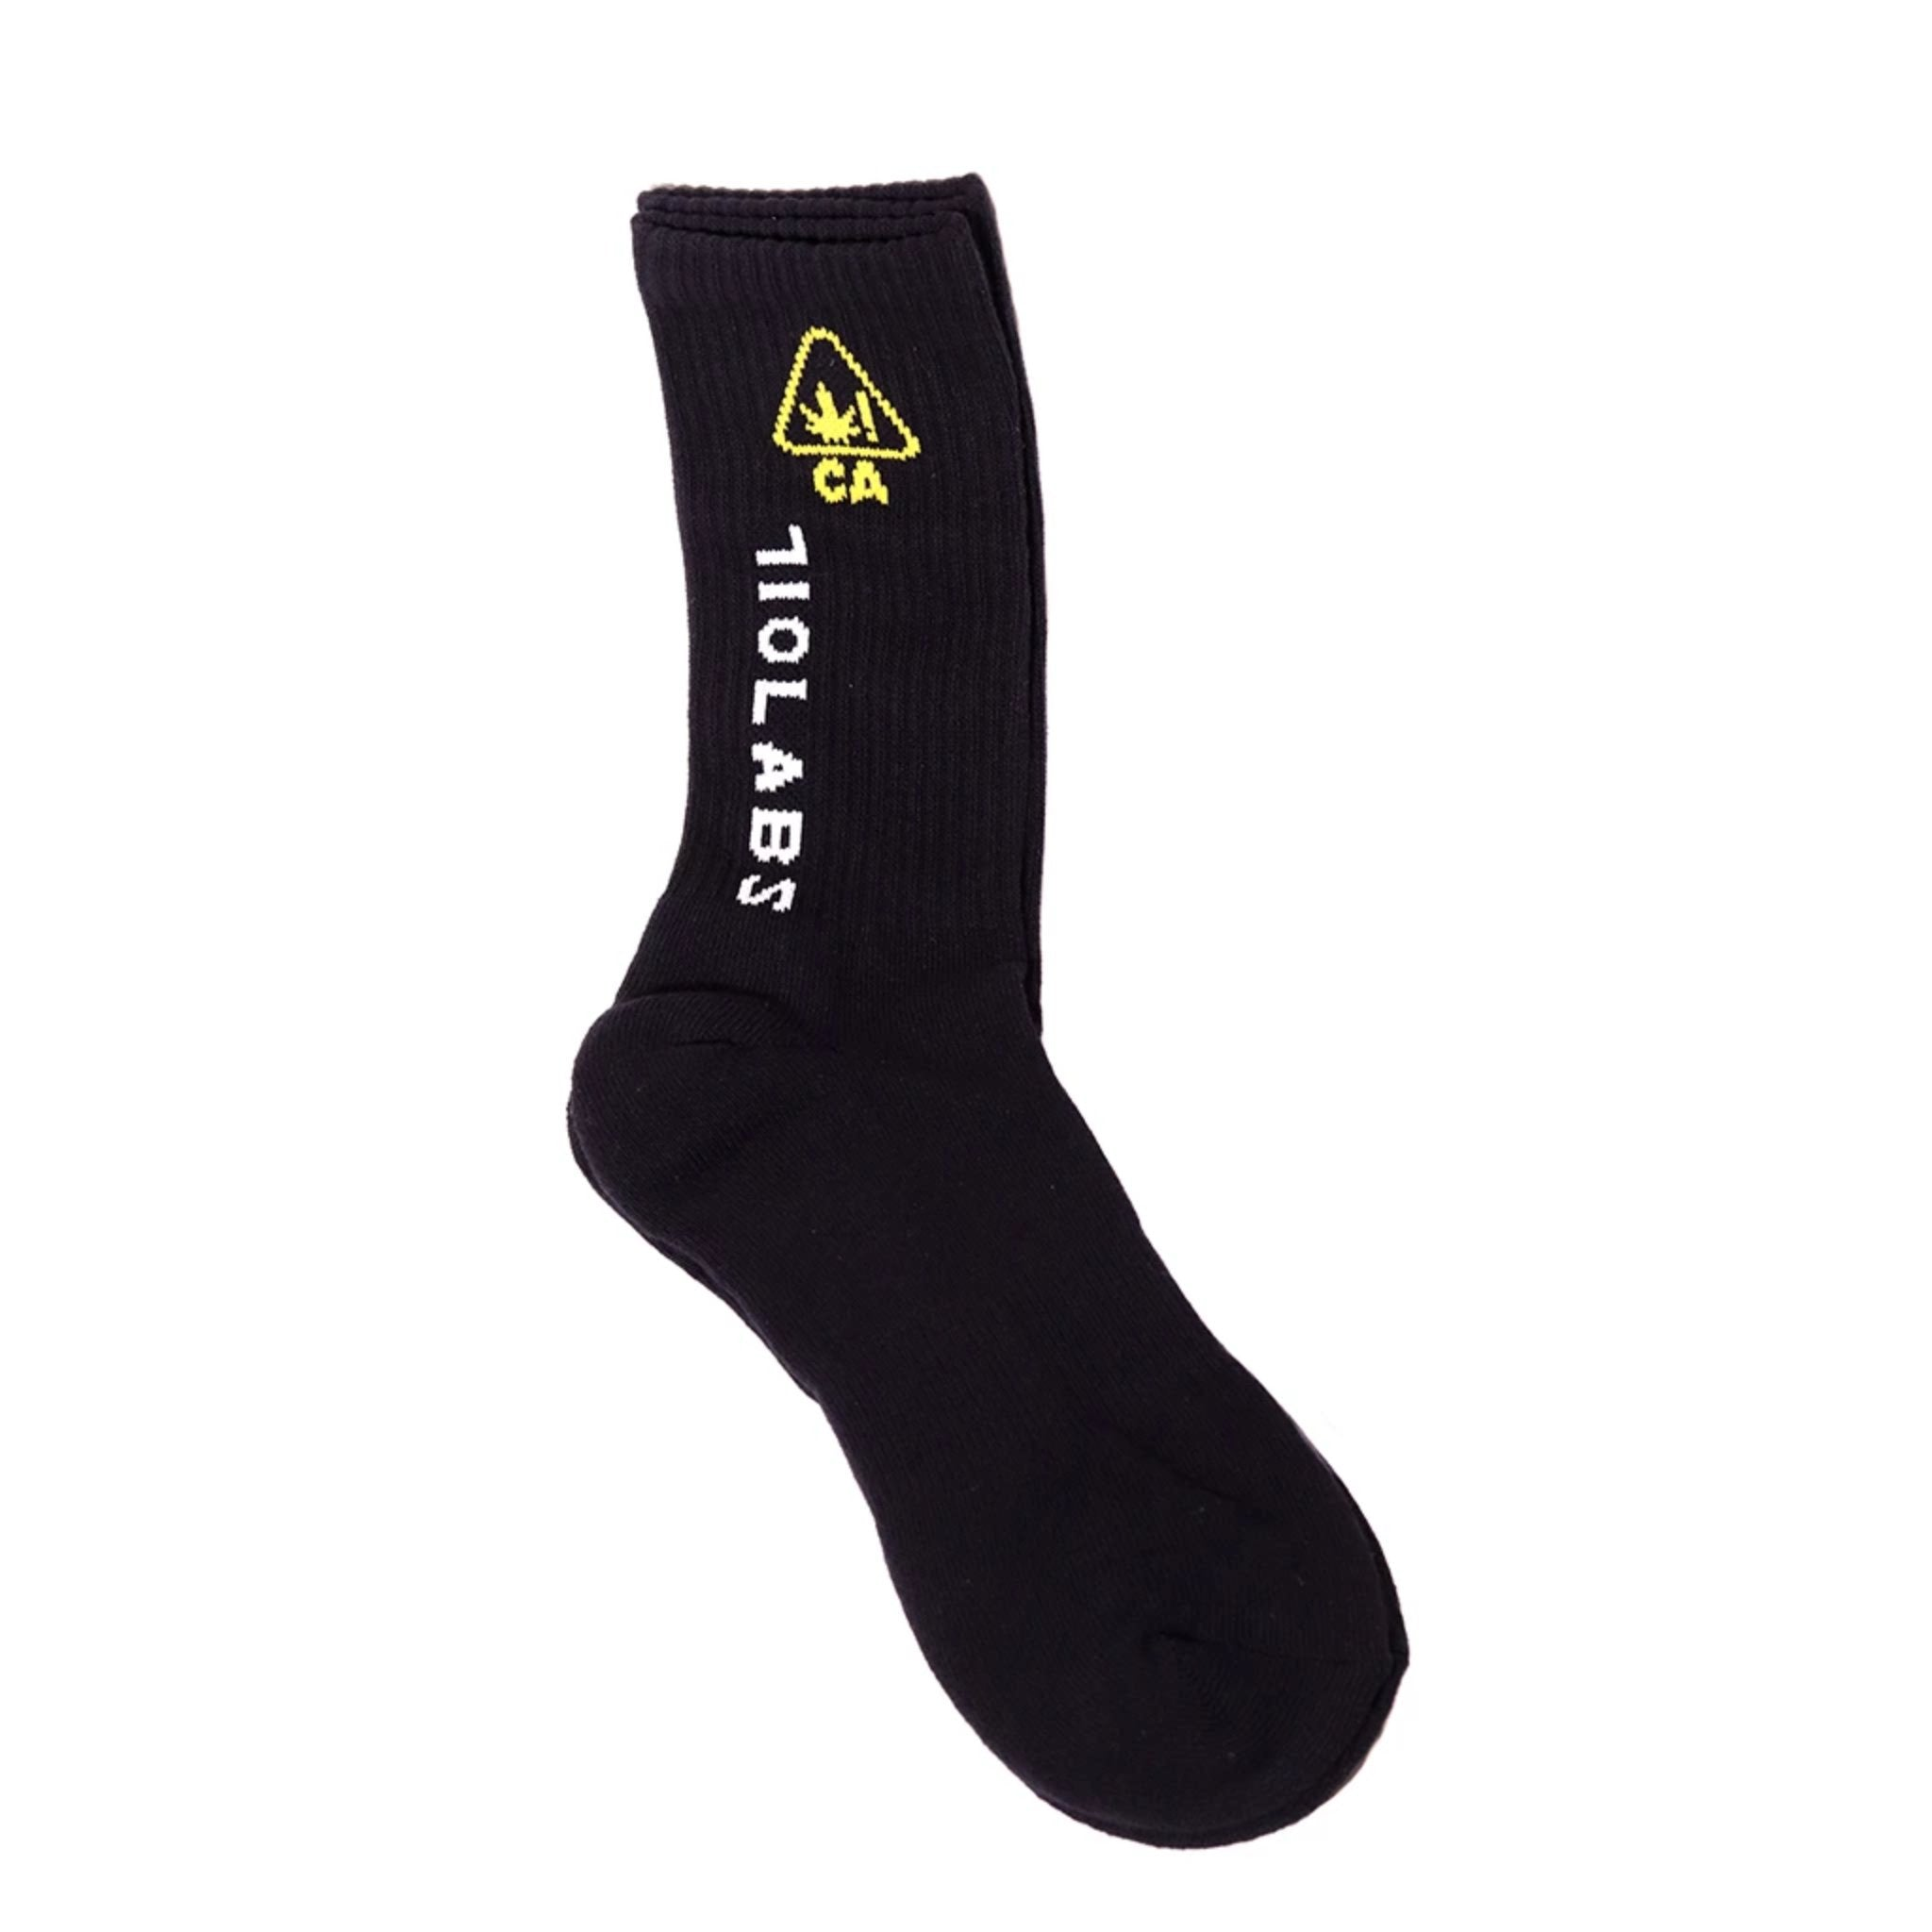 CA! Quality Socks